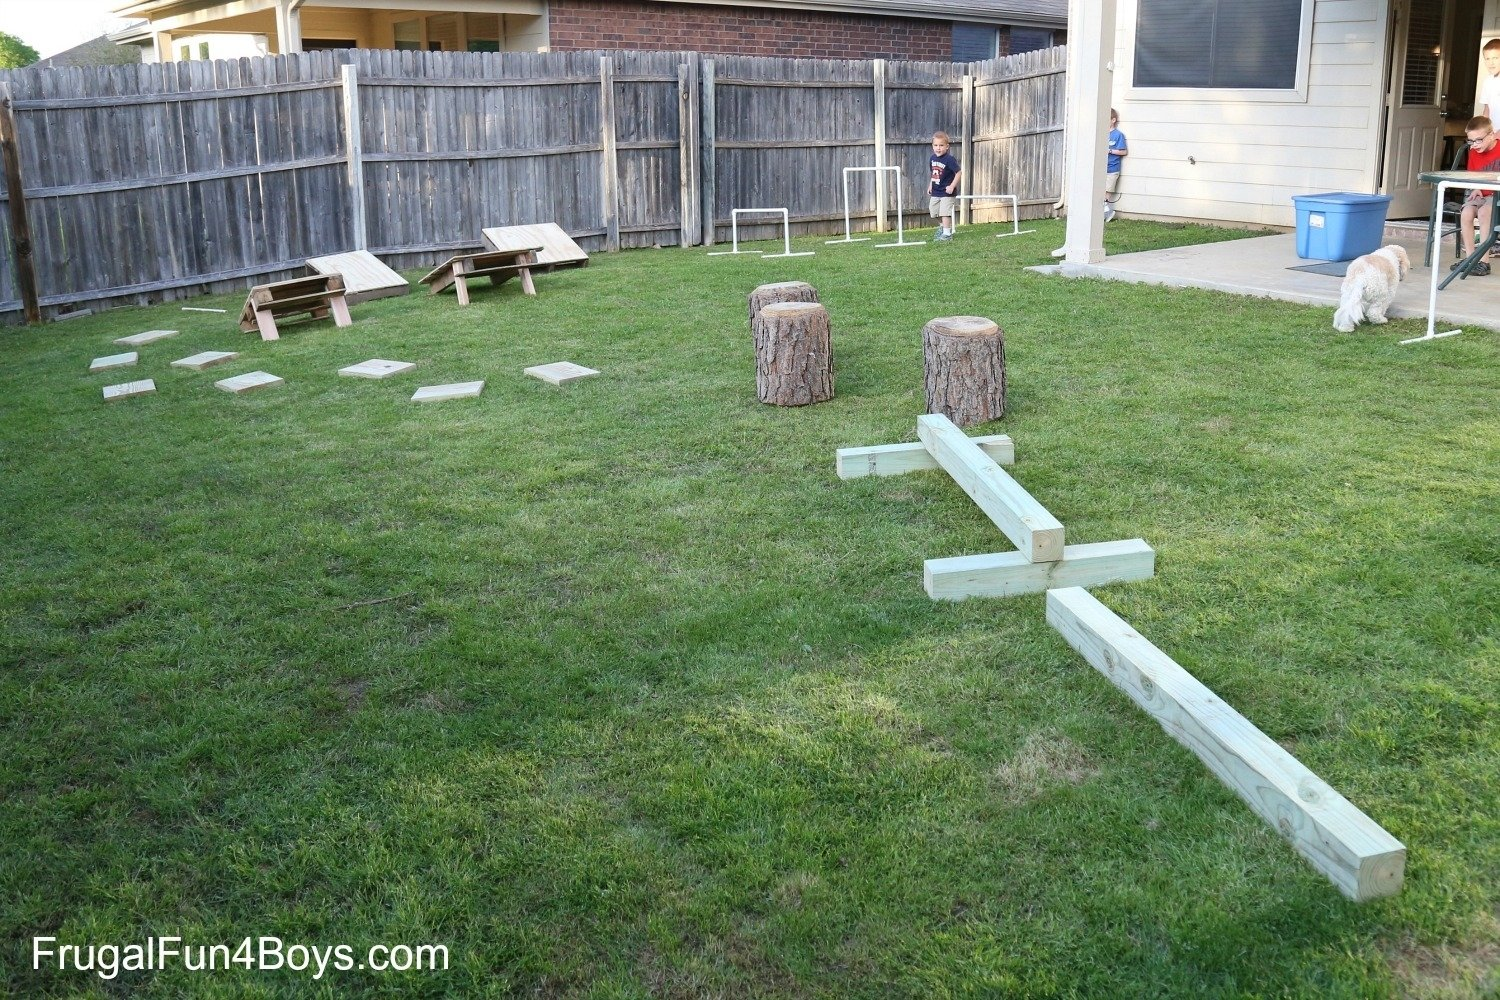 10 Fashionable Obstacle Course Ideas For Kids diy american ninja warrior backyard obstacle course 1 2021